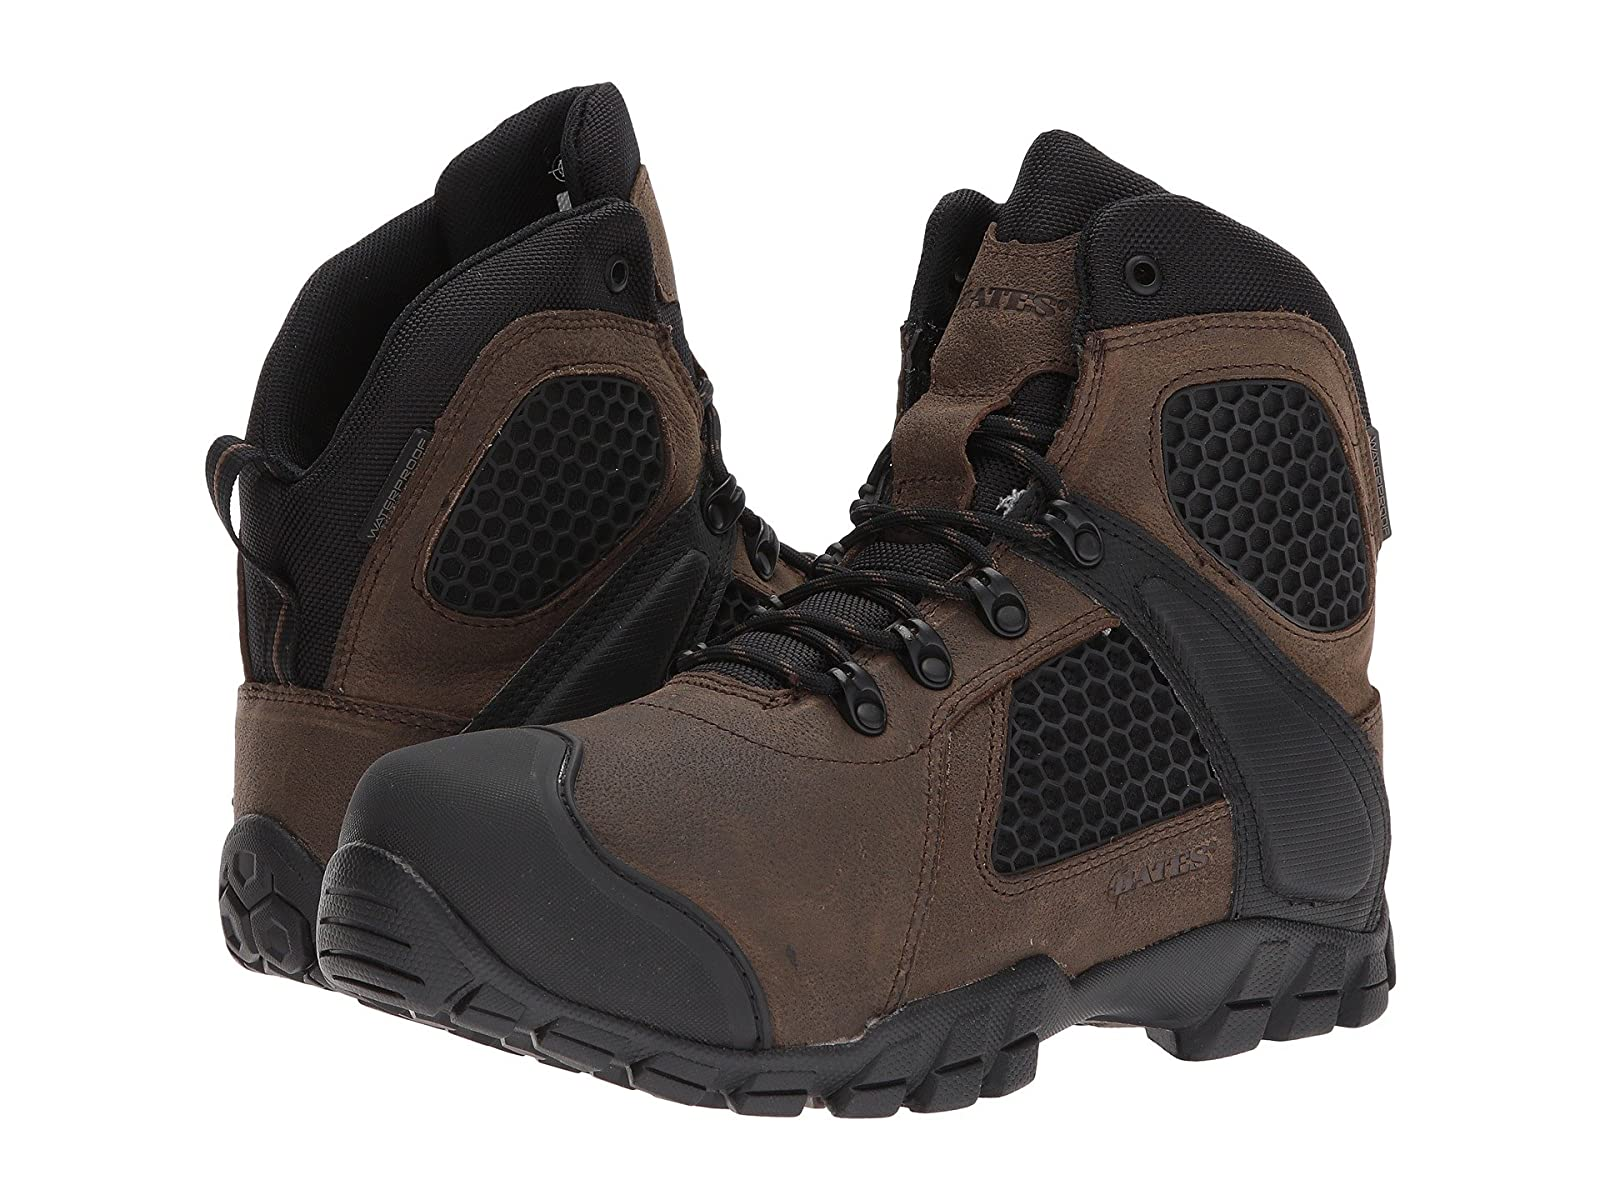 Bates Footwear Shock FXSelling fashionable and eye-catching shoes